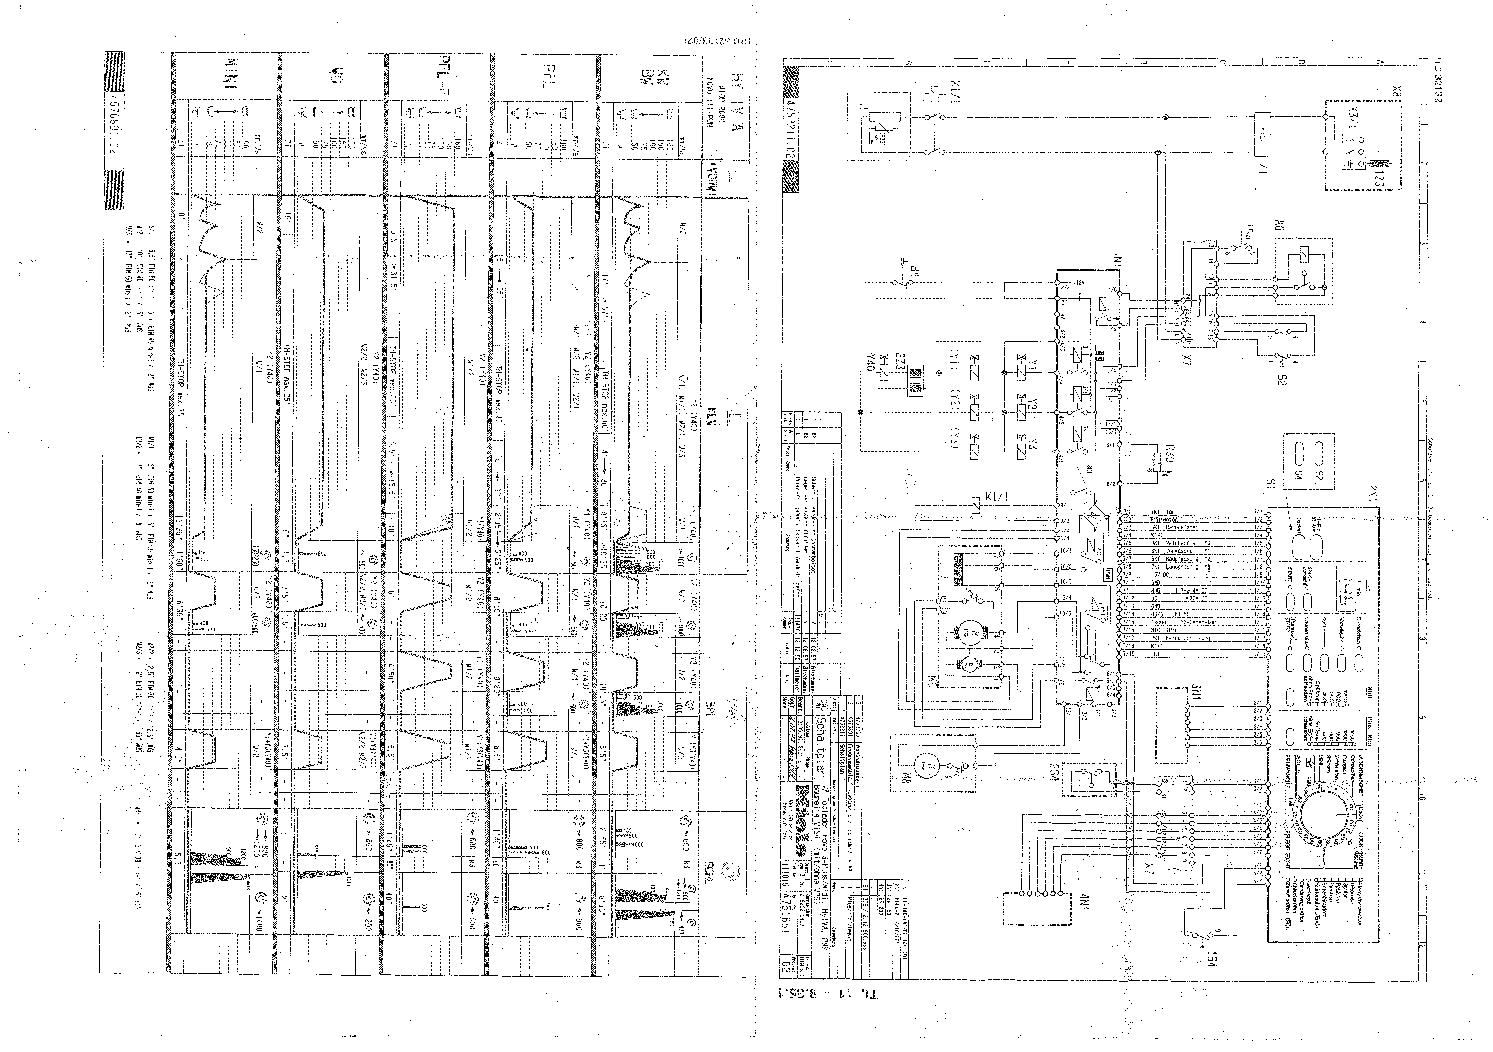 MIELE W150 SCH Service Manual free download, schematics